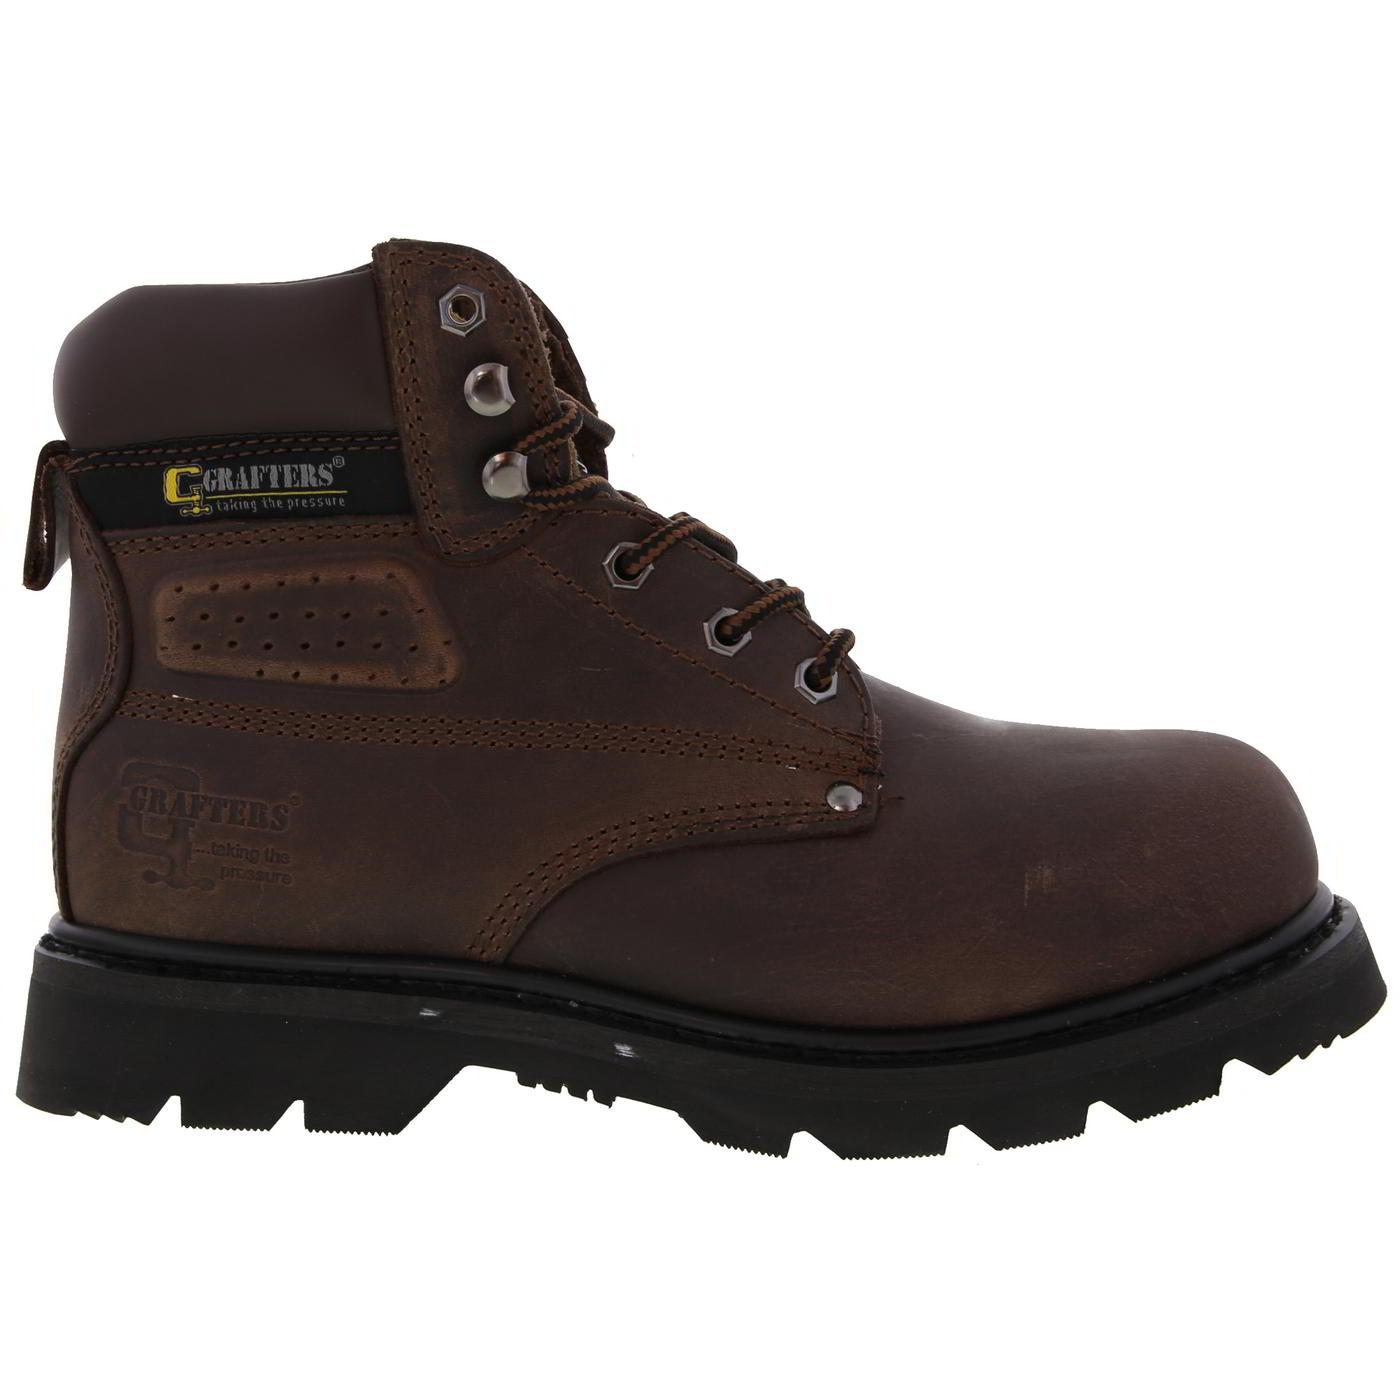 Grafters Mens Gladiator Steel Toe Cap Safety Work Boots - UK 9